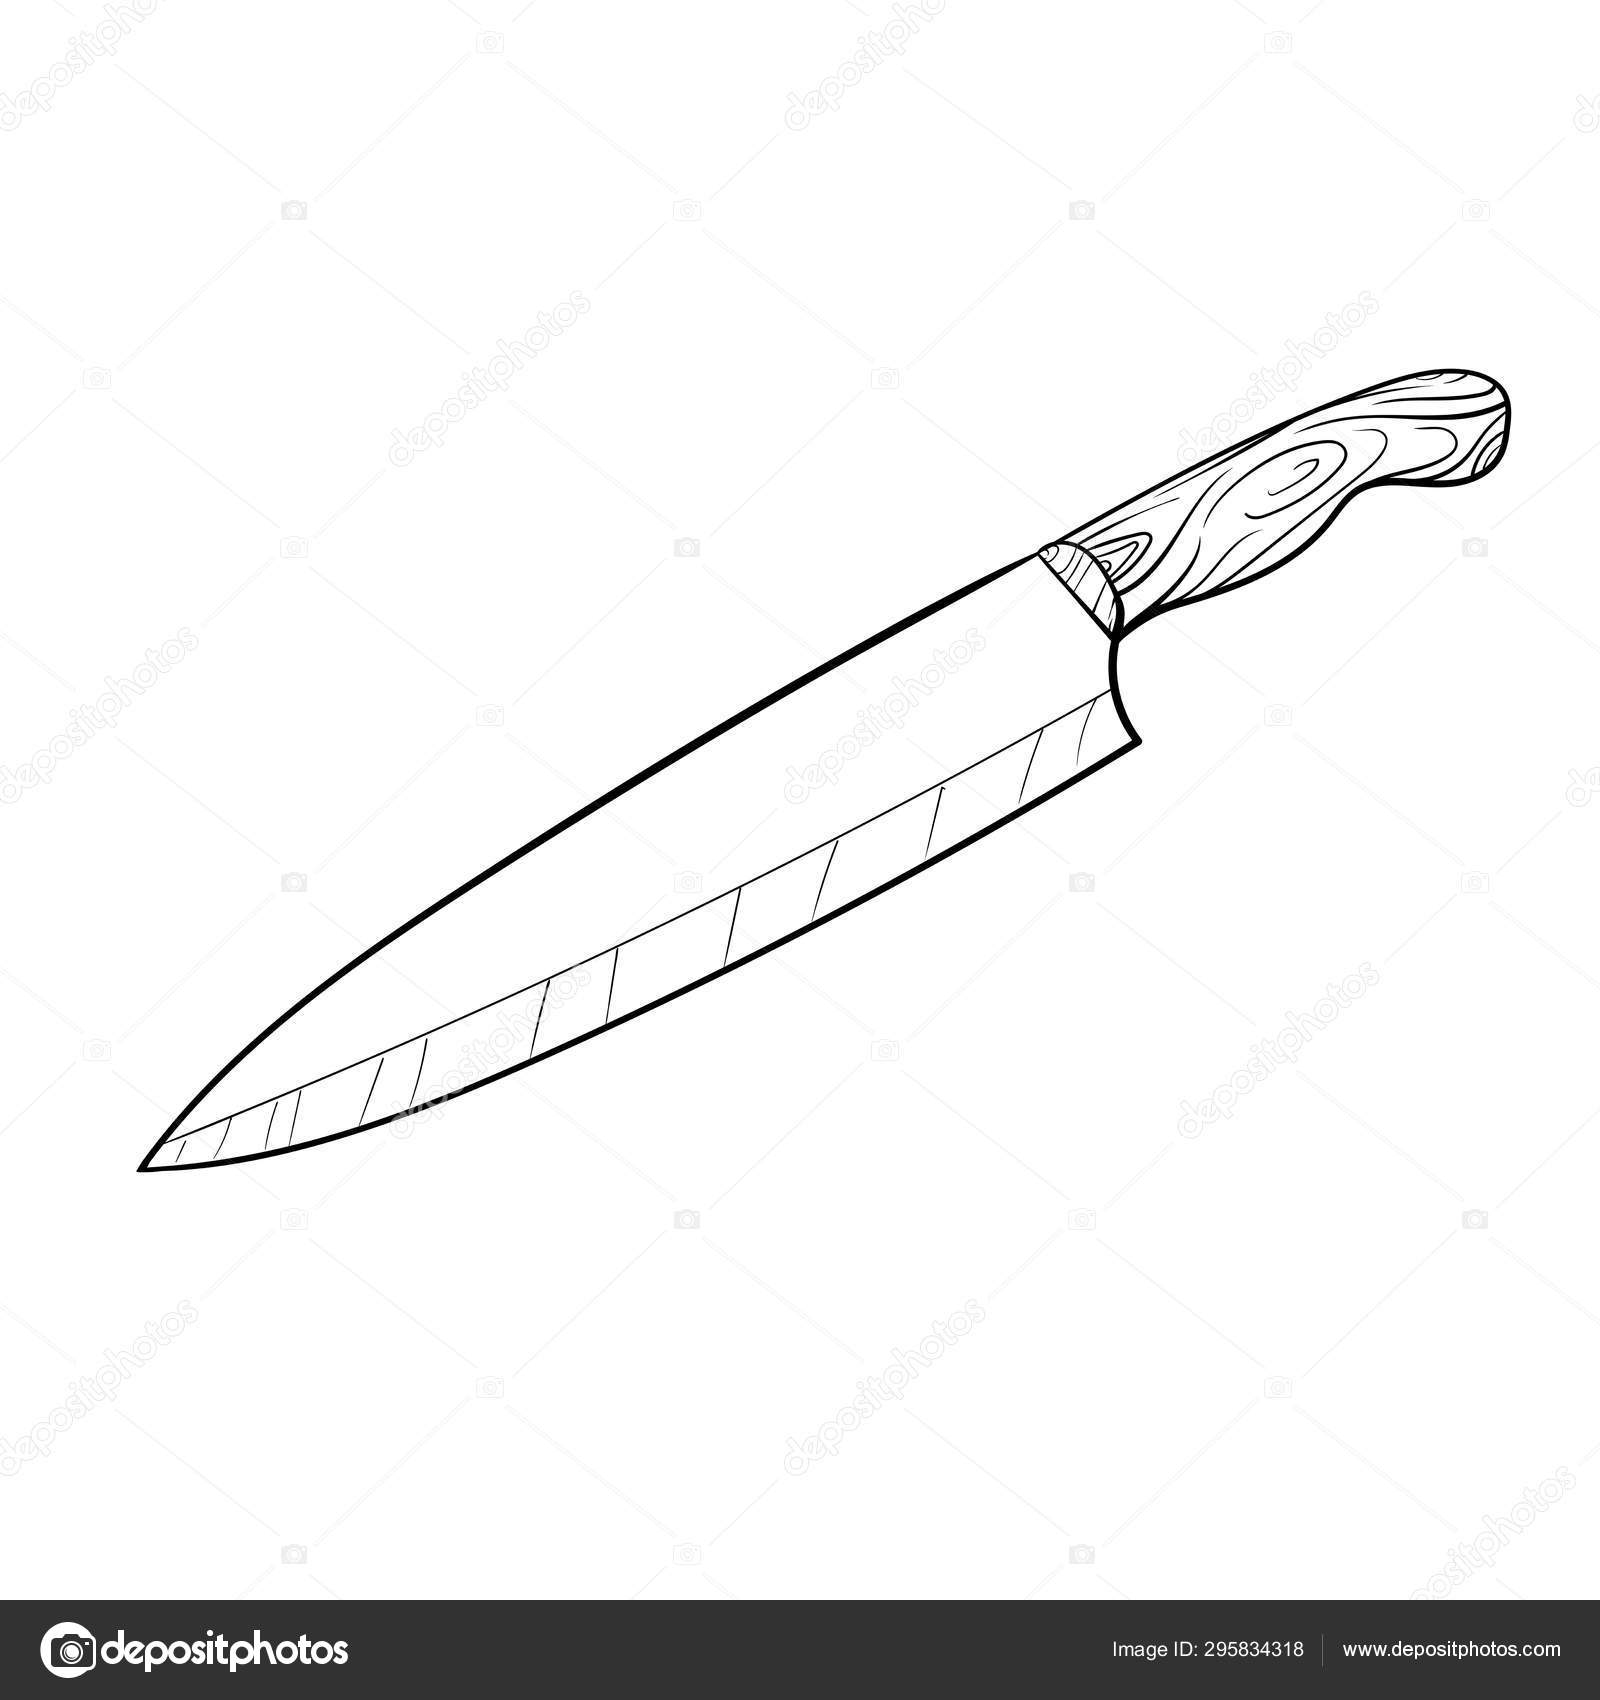 Kitchen Knife Hand Drawn Cartoon Vector And Illustration Hand Drawing Sketch Style Isolated On White Vector Image By C Gopasha Vector Stock 295834318